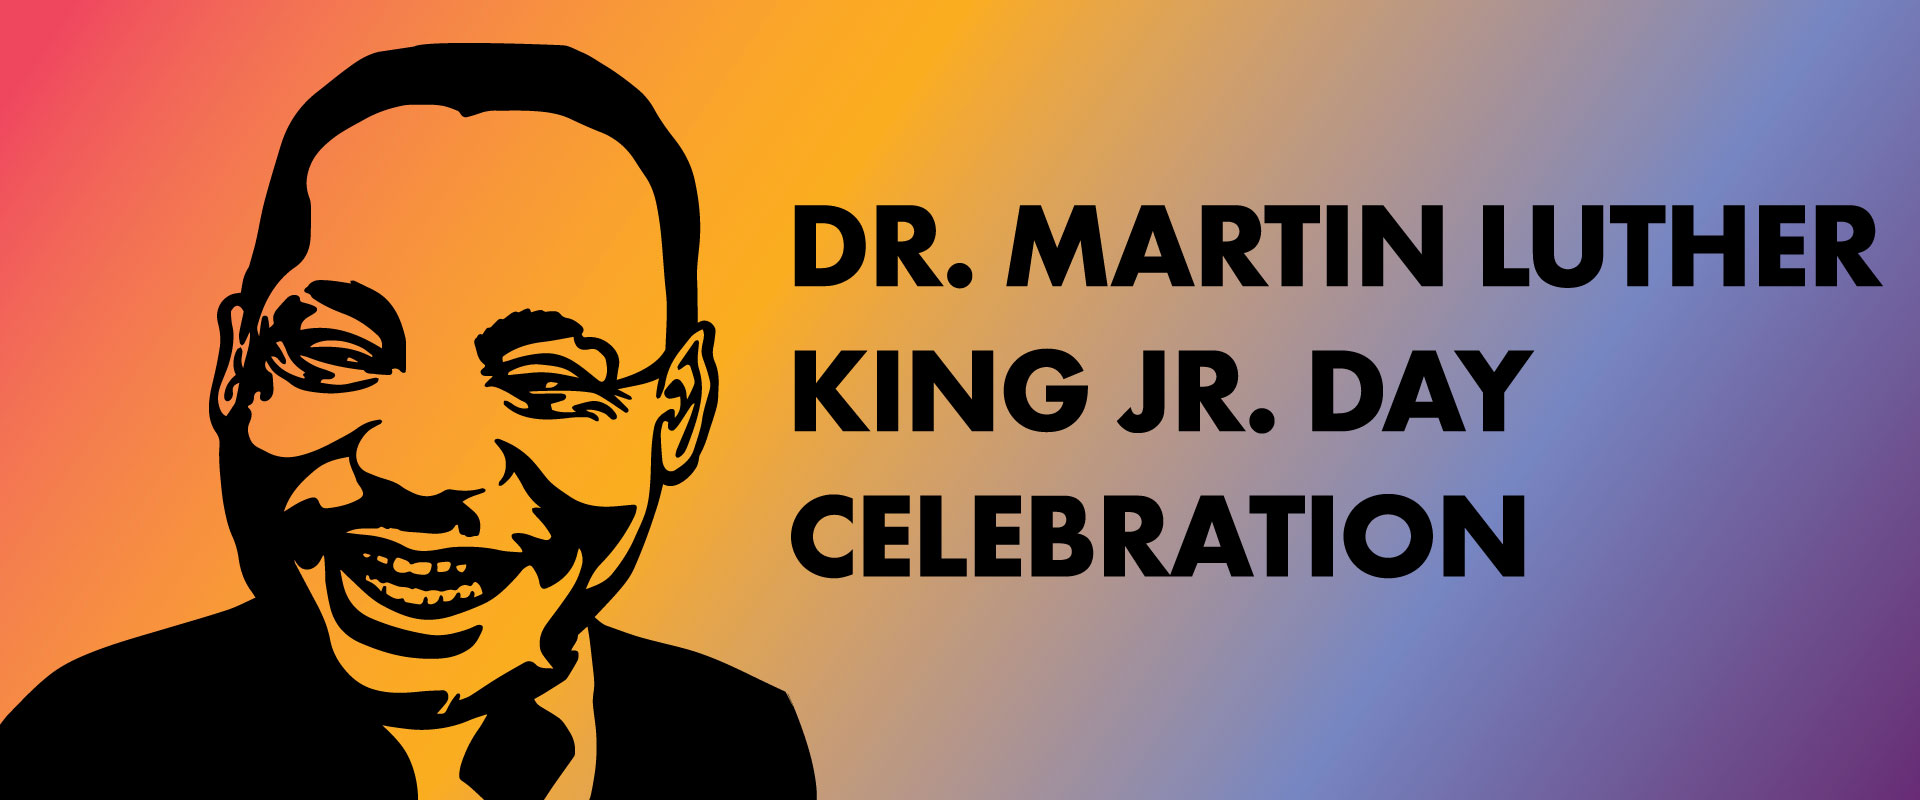 "Image of Dr. Martin Luther King Jr smiling over a rainbow gradient with the words ""Dr. Martin Luther King Jr. Day Celebration"""